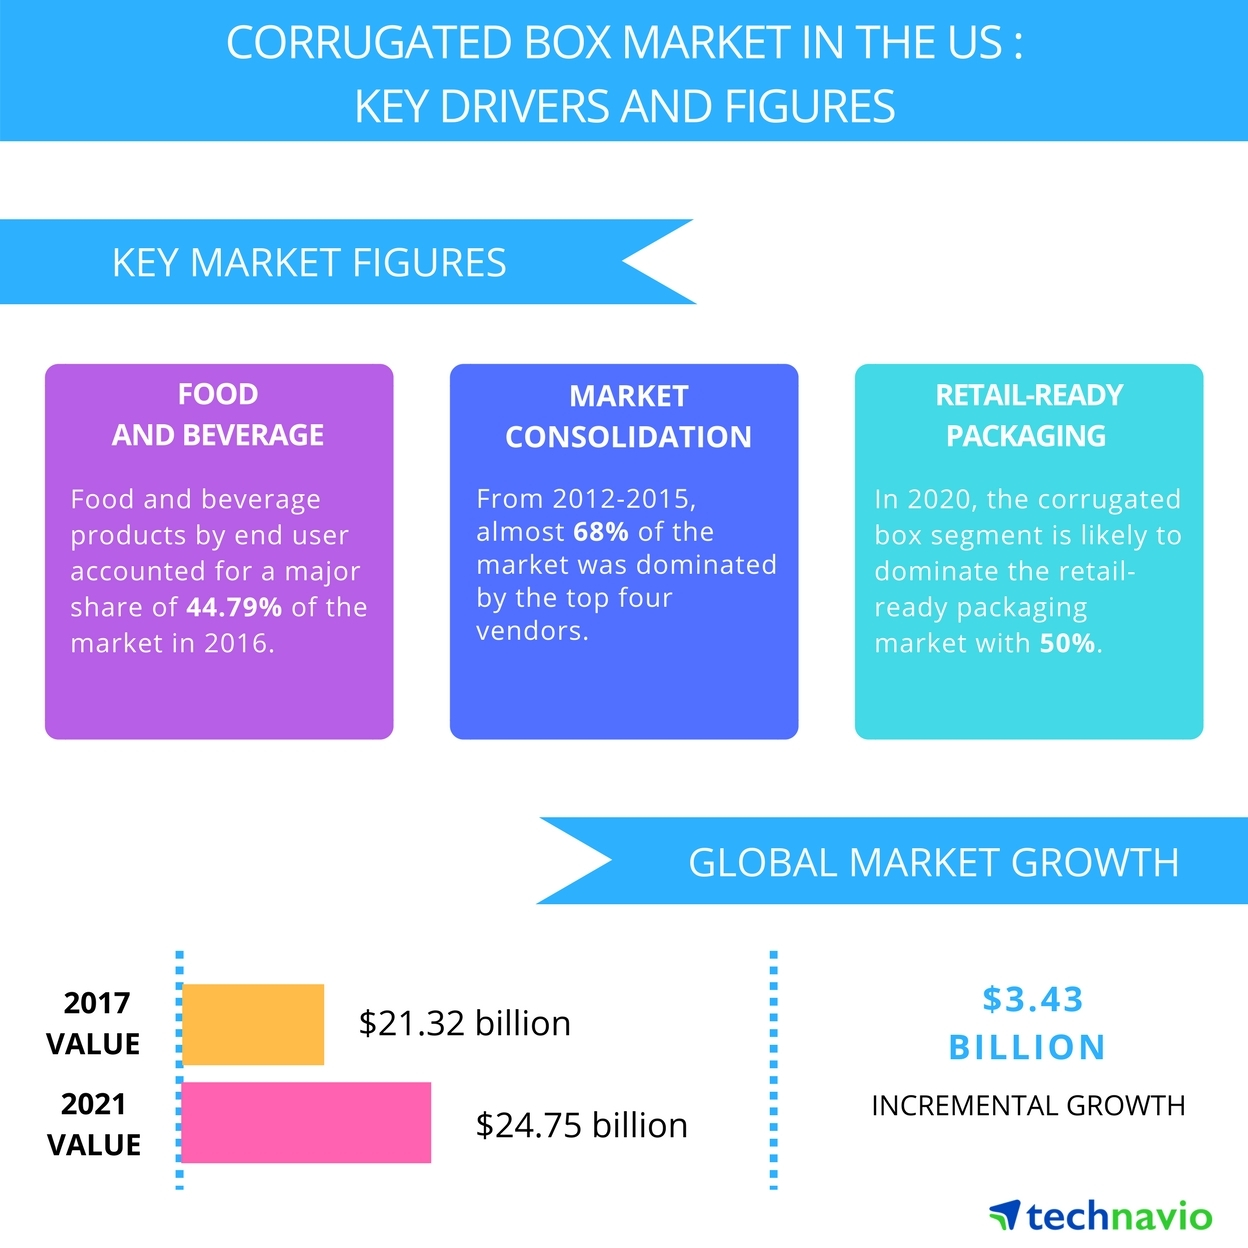 Technavio has published a new report on the corrugated box market in the US from 2017-2021. (Graphic: Business Wire)